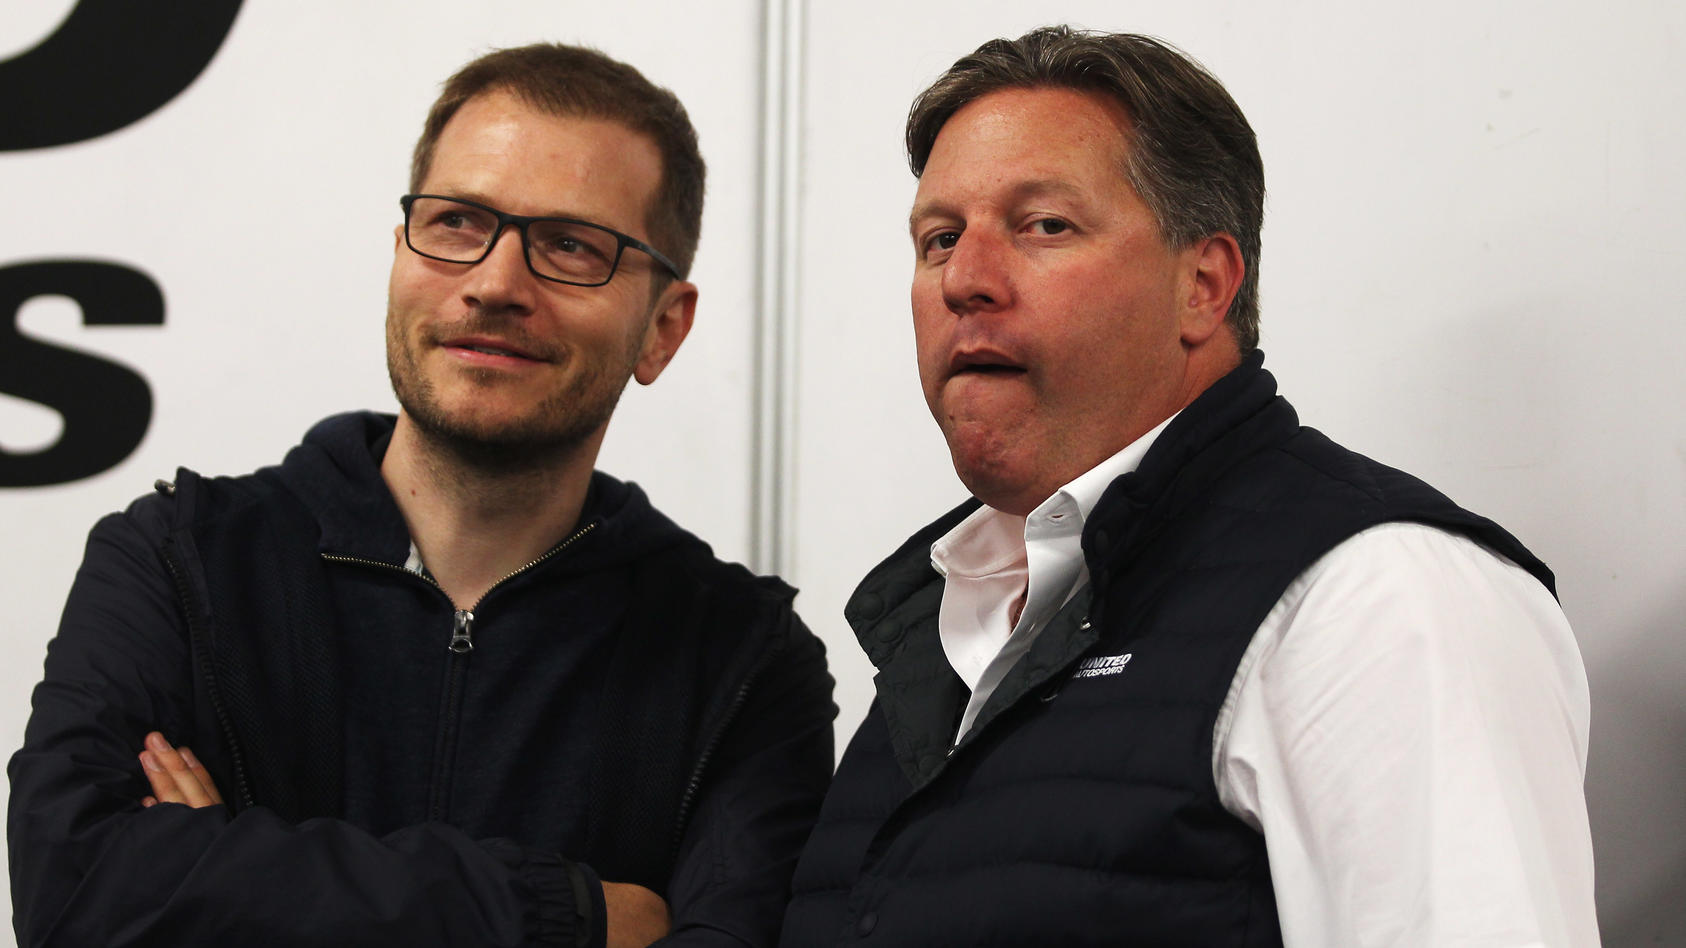 McLaren Appoint Former Porsche WEC LMP1 Boss Andreas Seidl As New Managing Director Of Its F1 Team - Le Mans 24 Hour Race - Qualifying